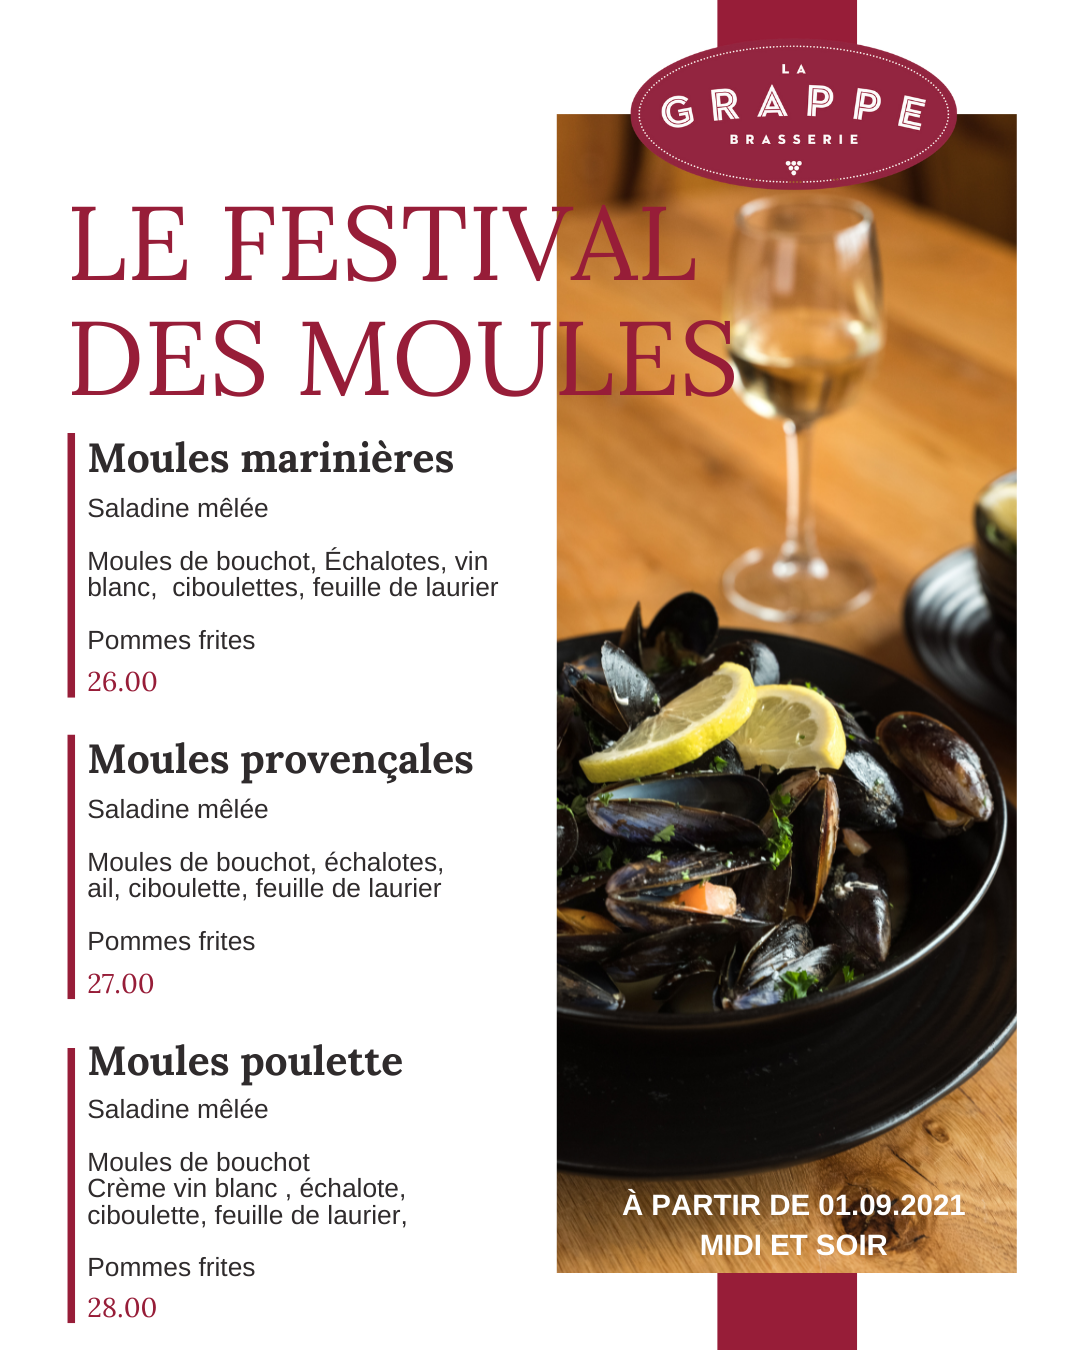 Moules cheyres